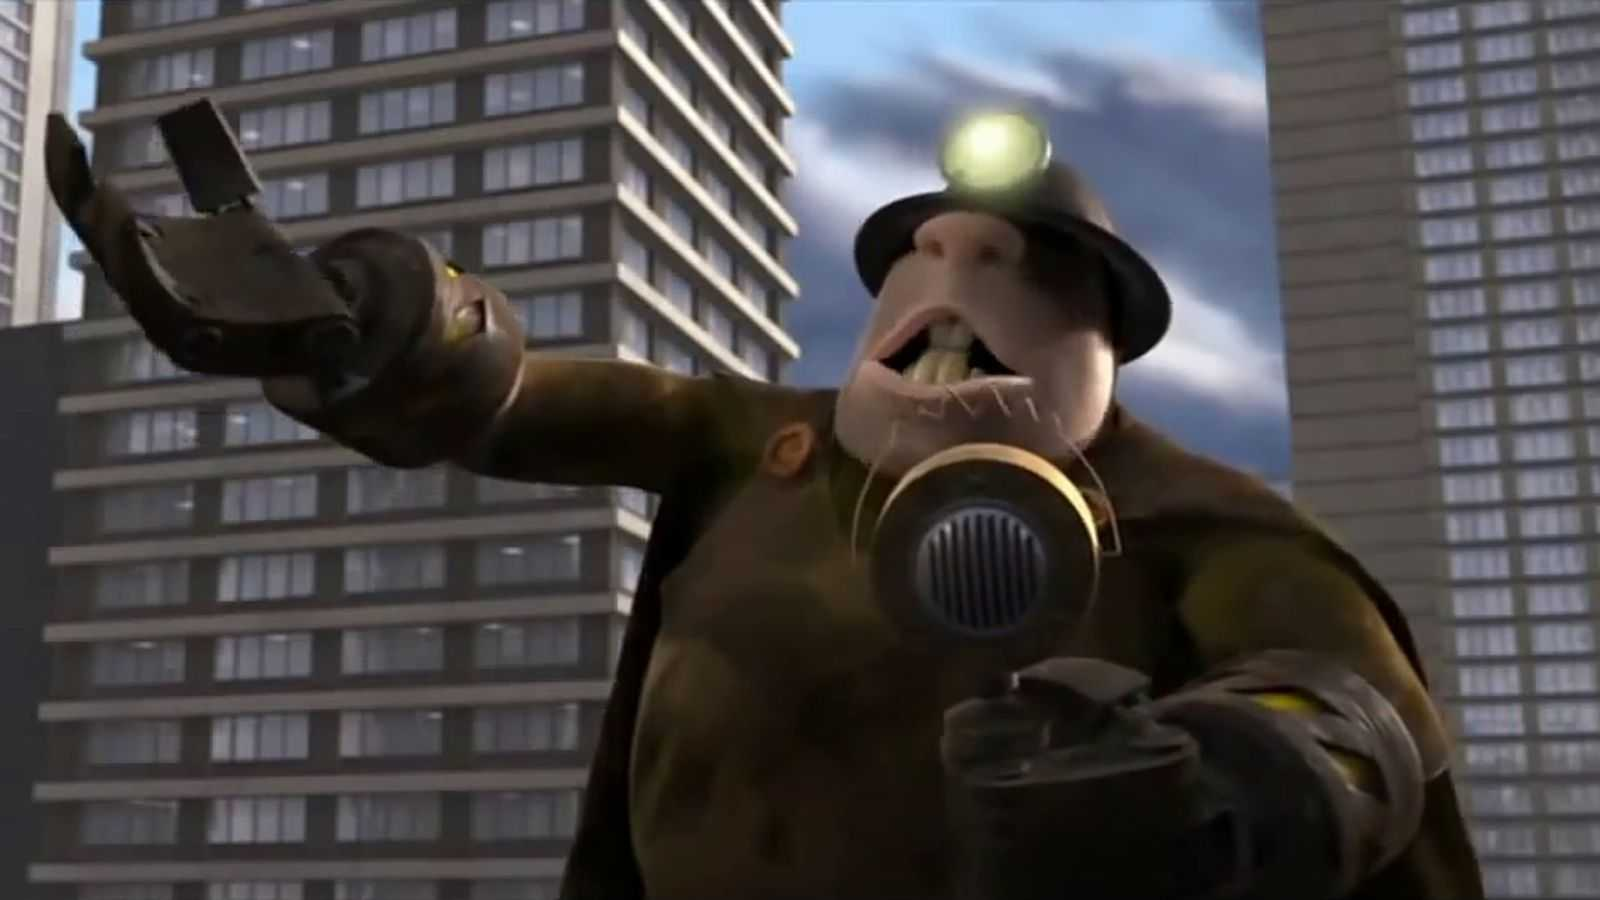 The Mole Man from The Incredibles